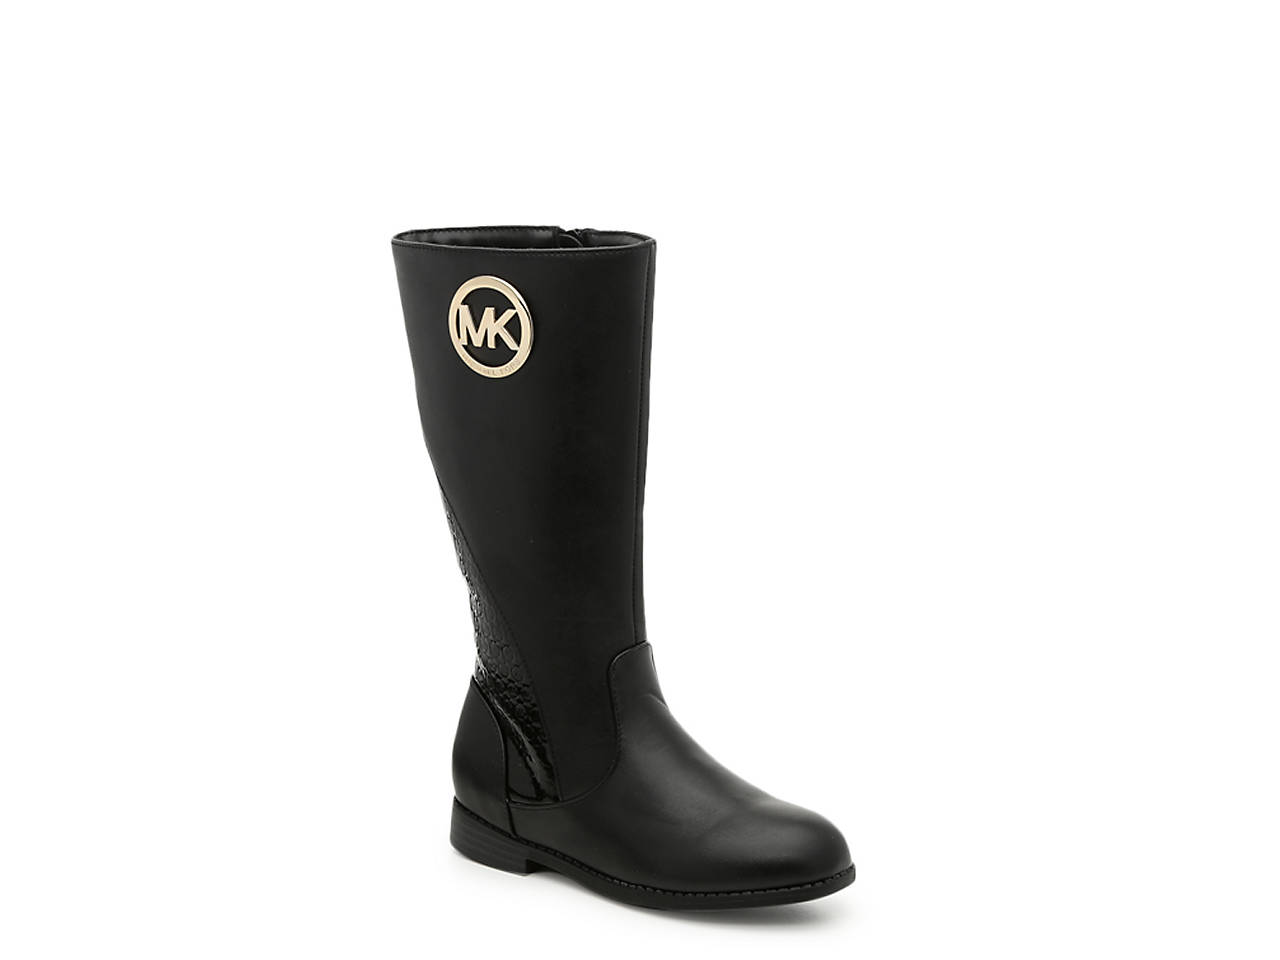 wholesale online latest style of 2019 search for best Emma Raleigh Riding Boot - Kids'